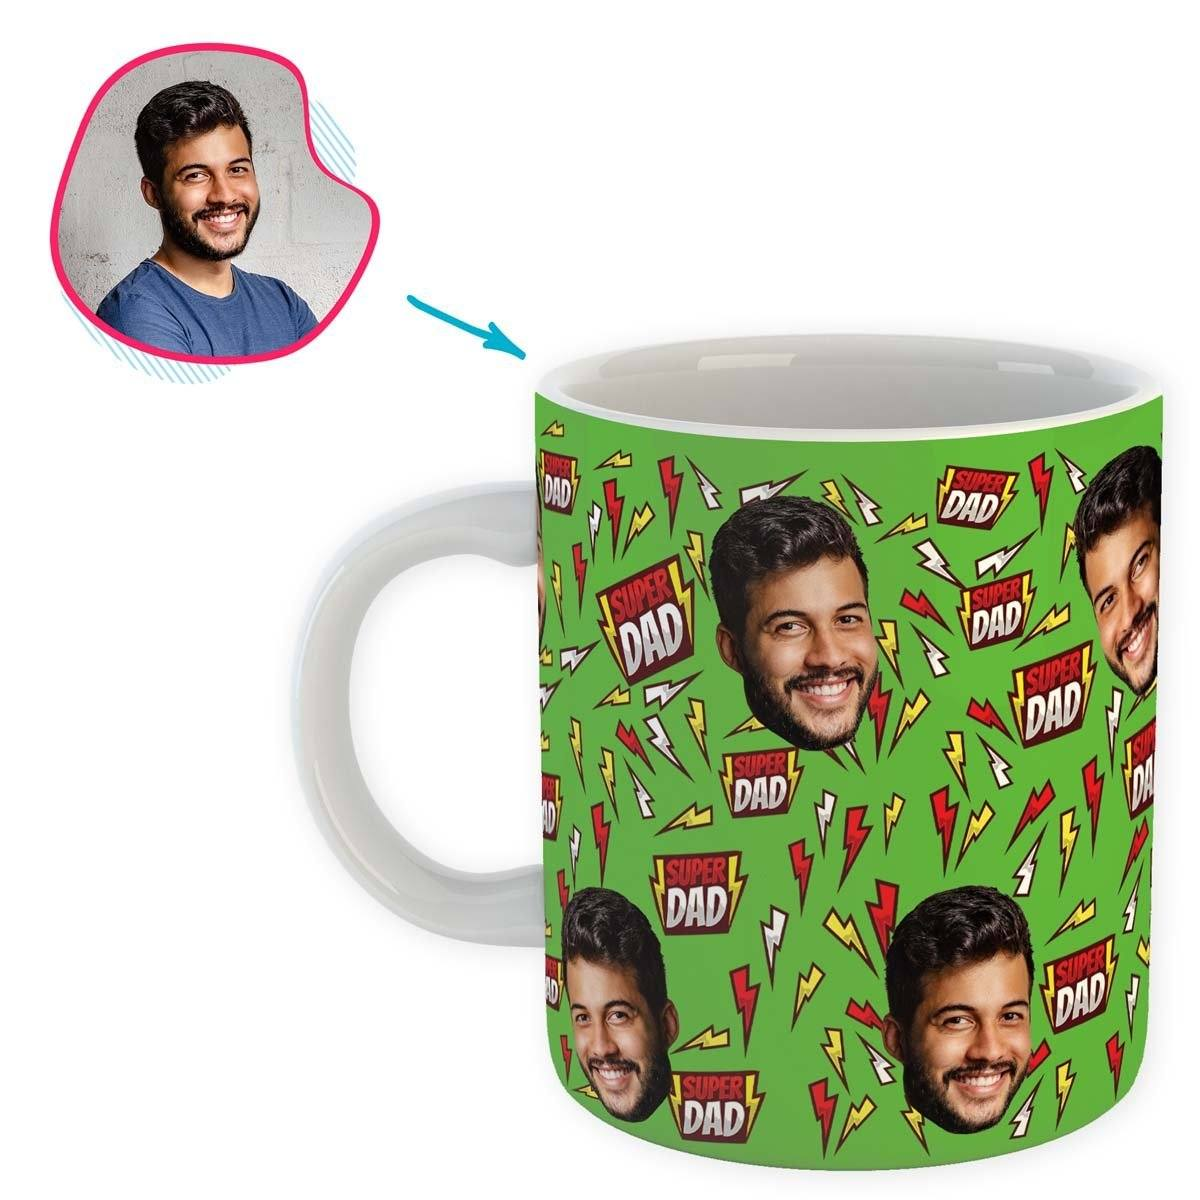 green Super Dad mug personalized with photo of face printed on it